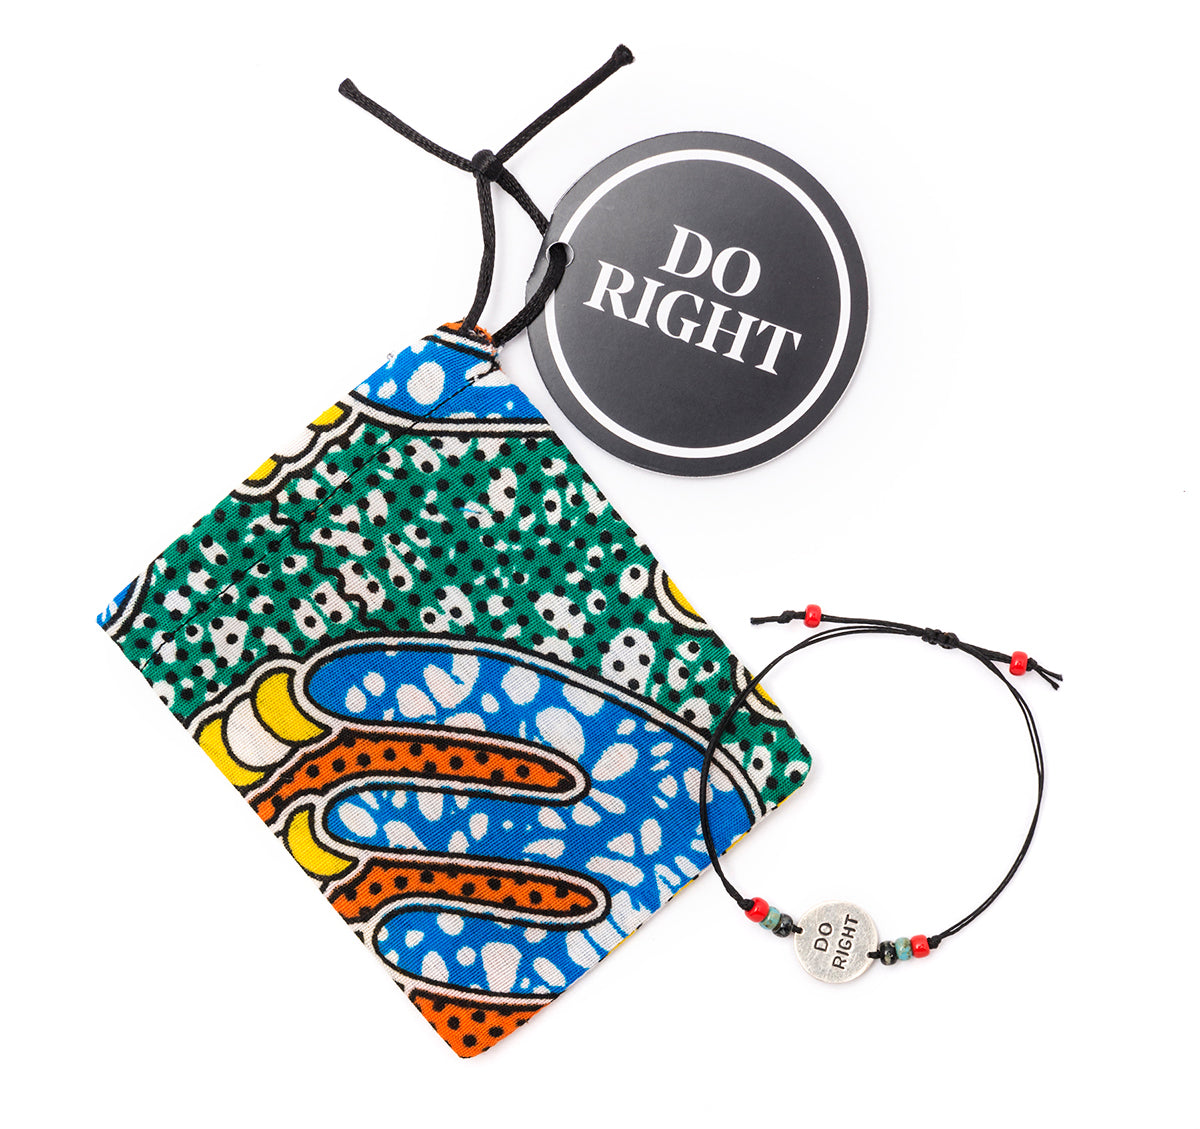 bracelet bag with purchase